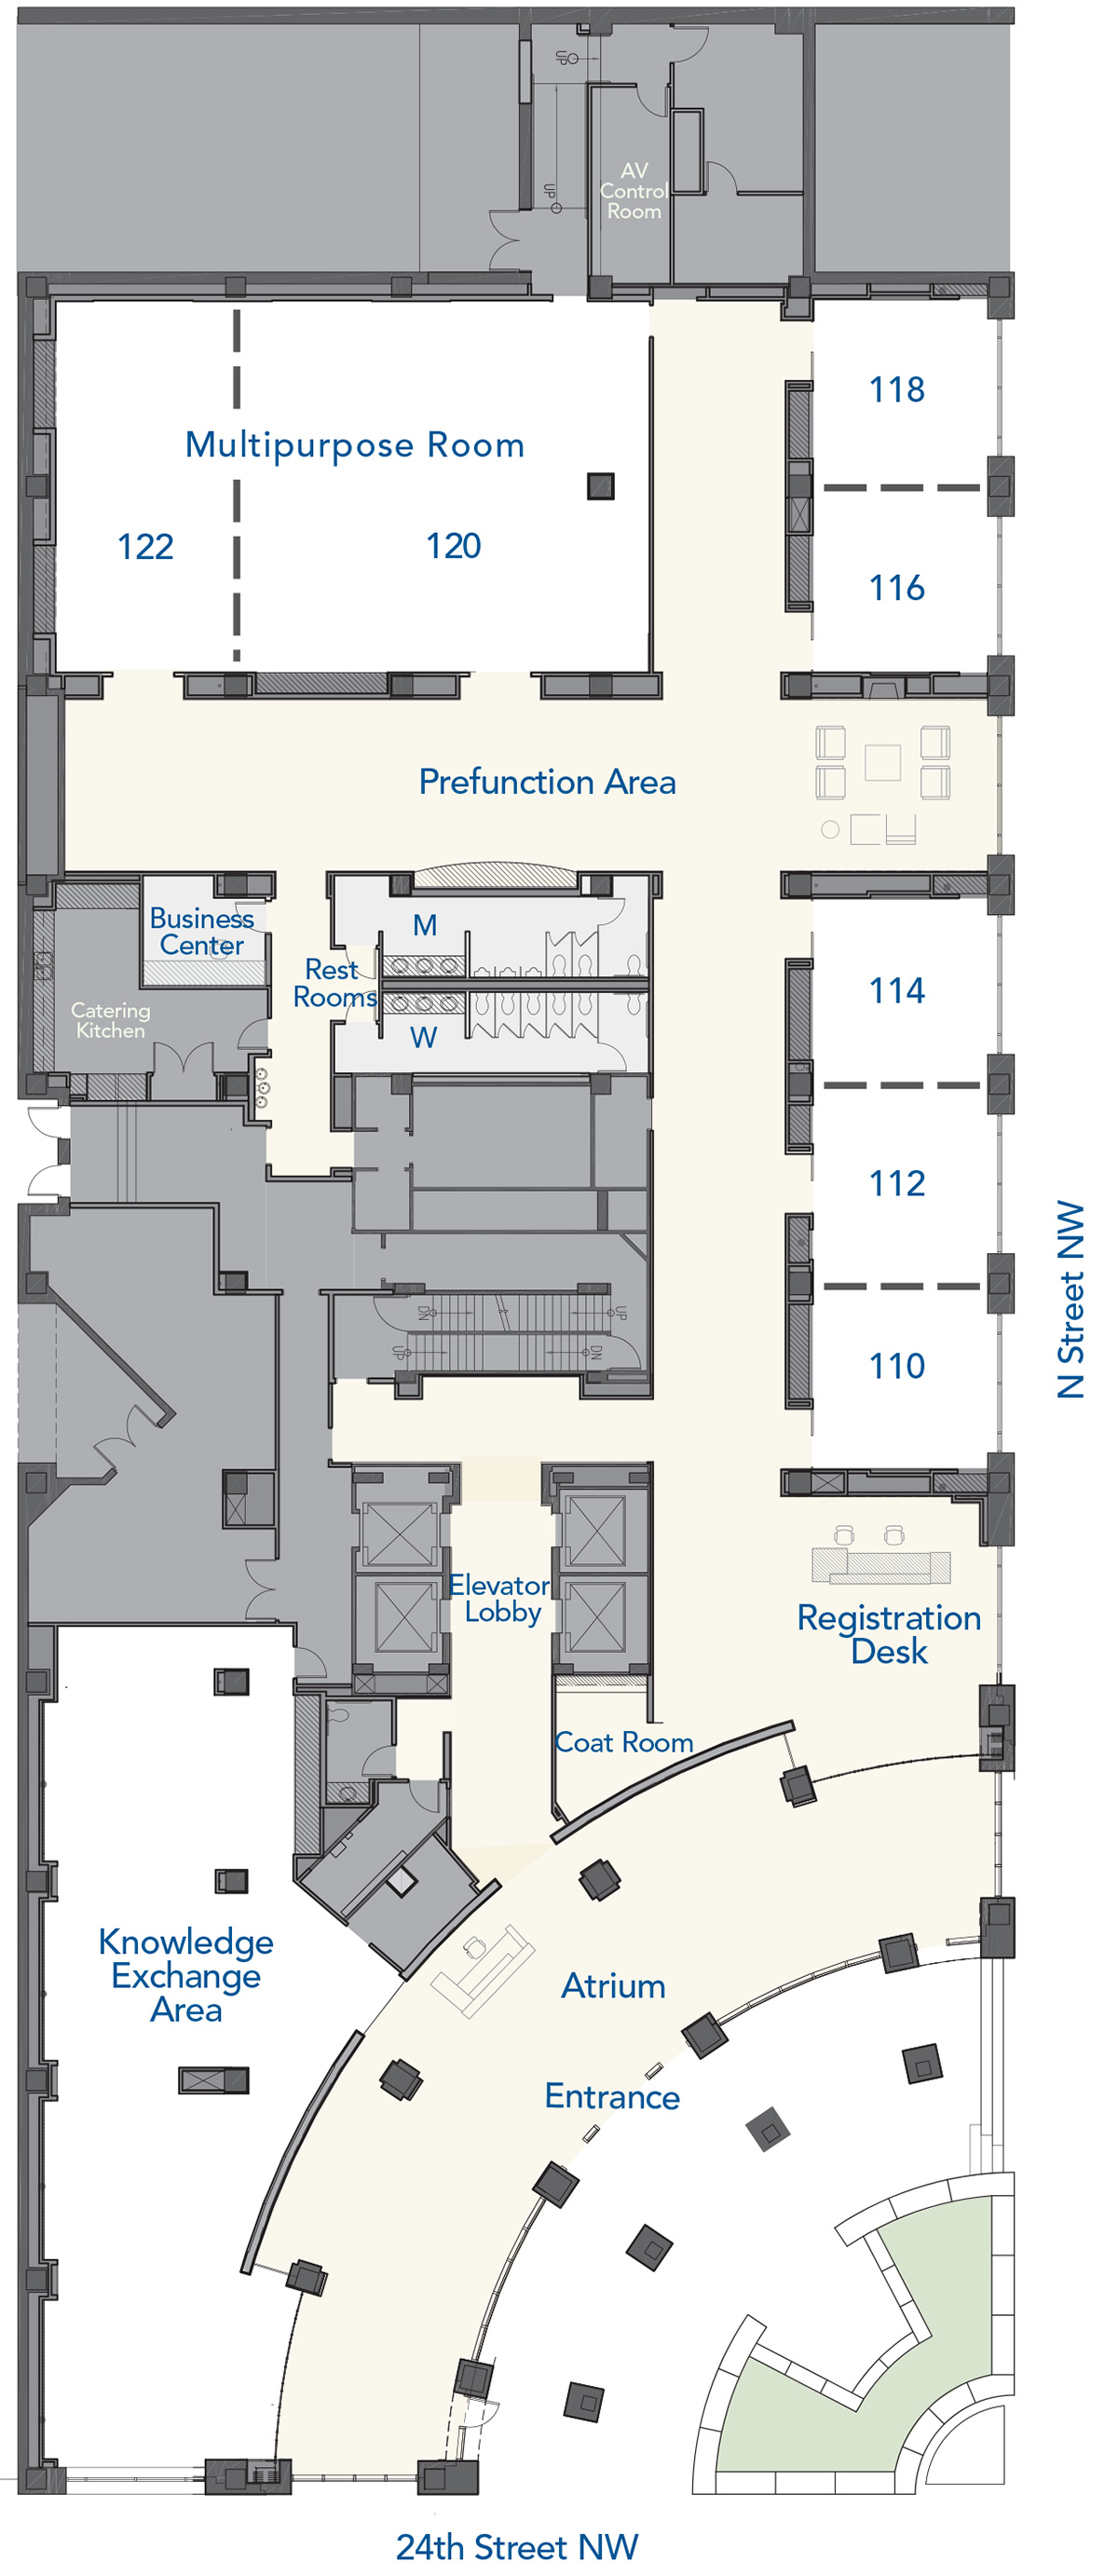 Conference Room Dimensions In Feet